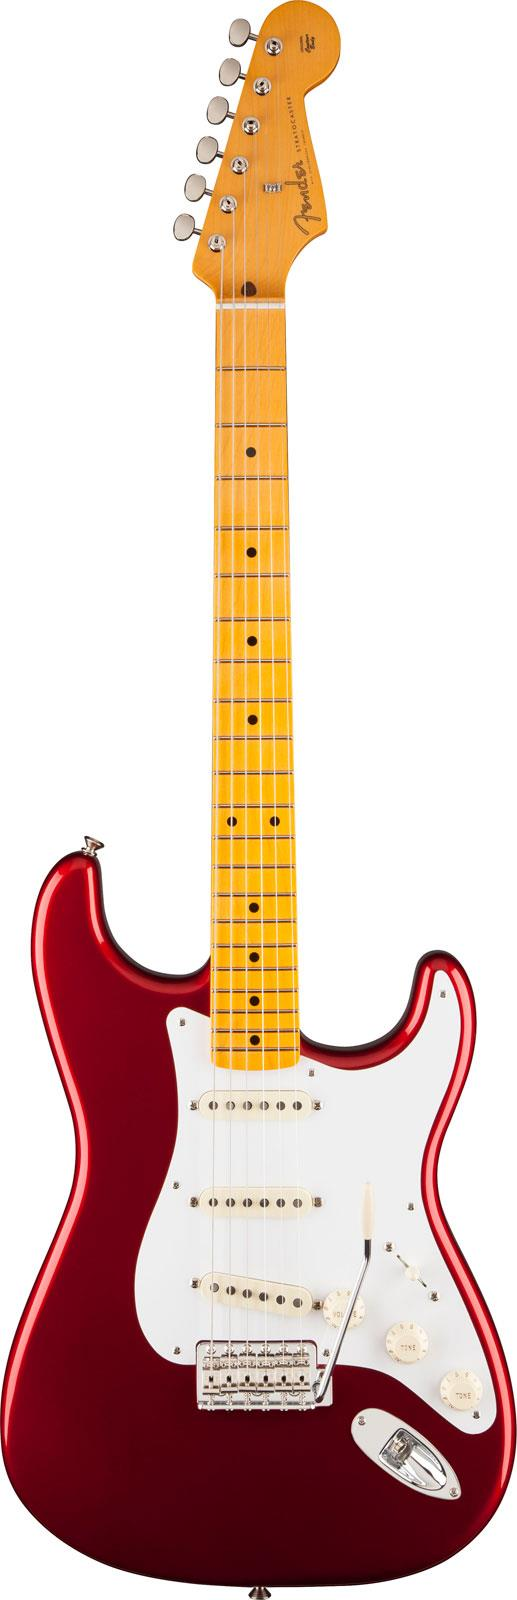 Fender Classic Series 50s Stratocaster Lacquer Candy Apple Red